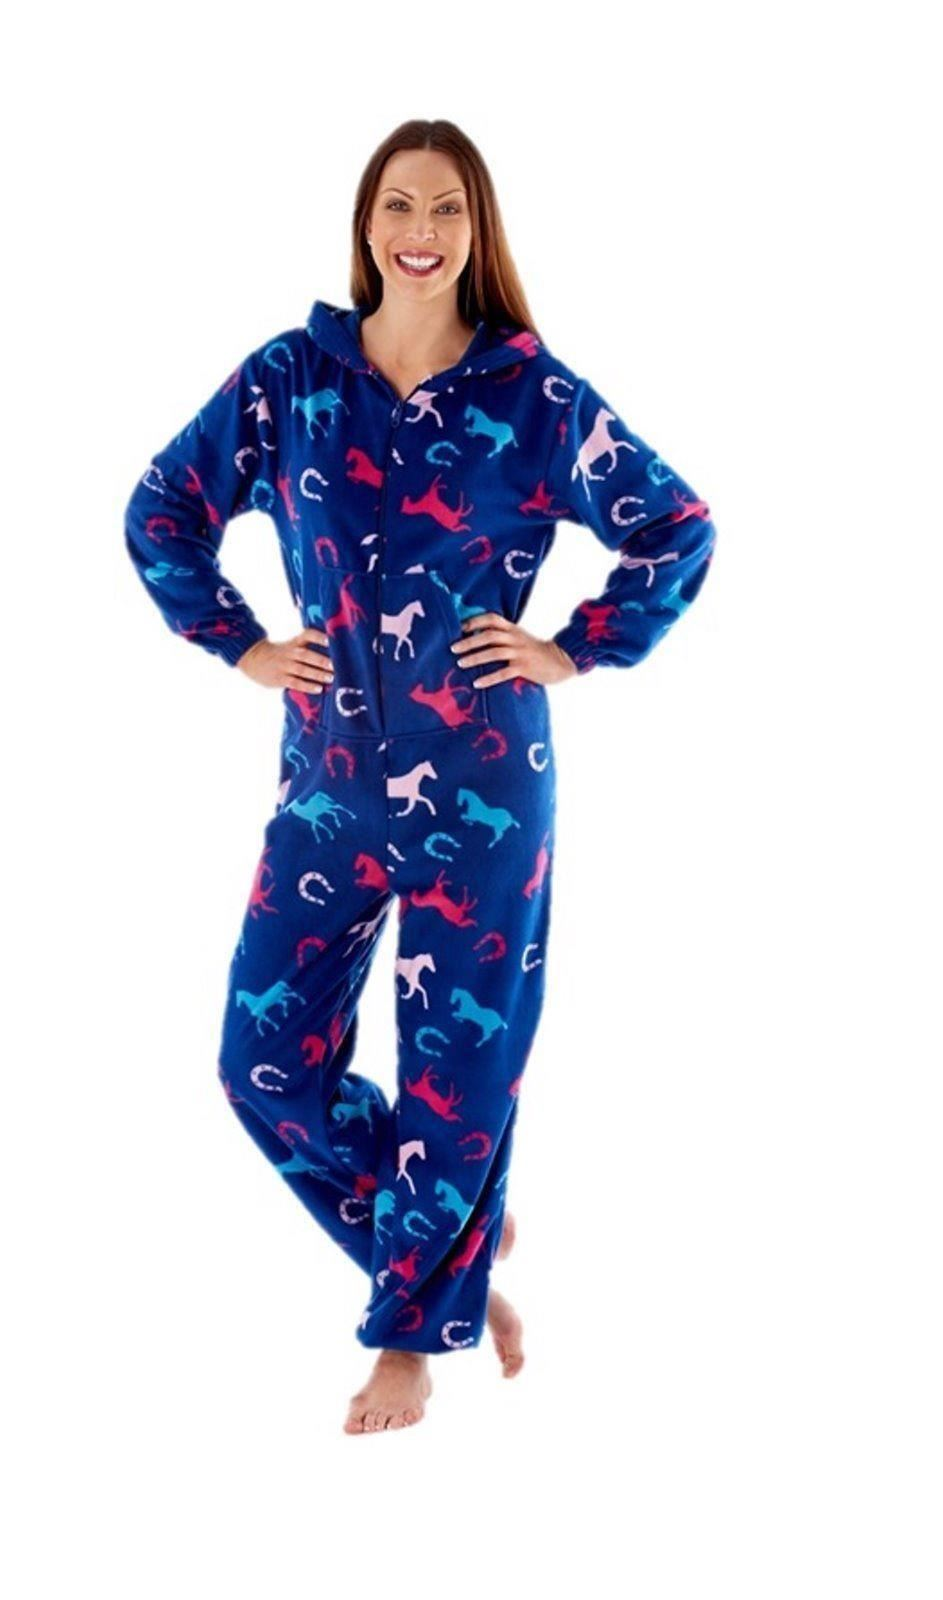 ladies womens fleece horse onesie sleepwear nightwear pyjamas one piece pajama ebay. Black Bedroom Furniture Sets. Home Design Ideas